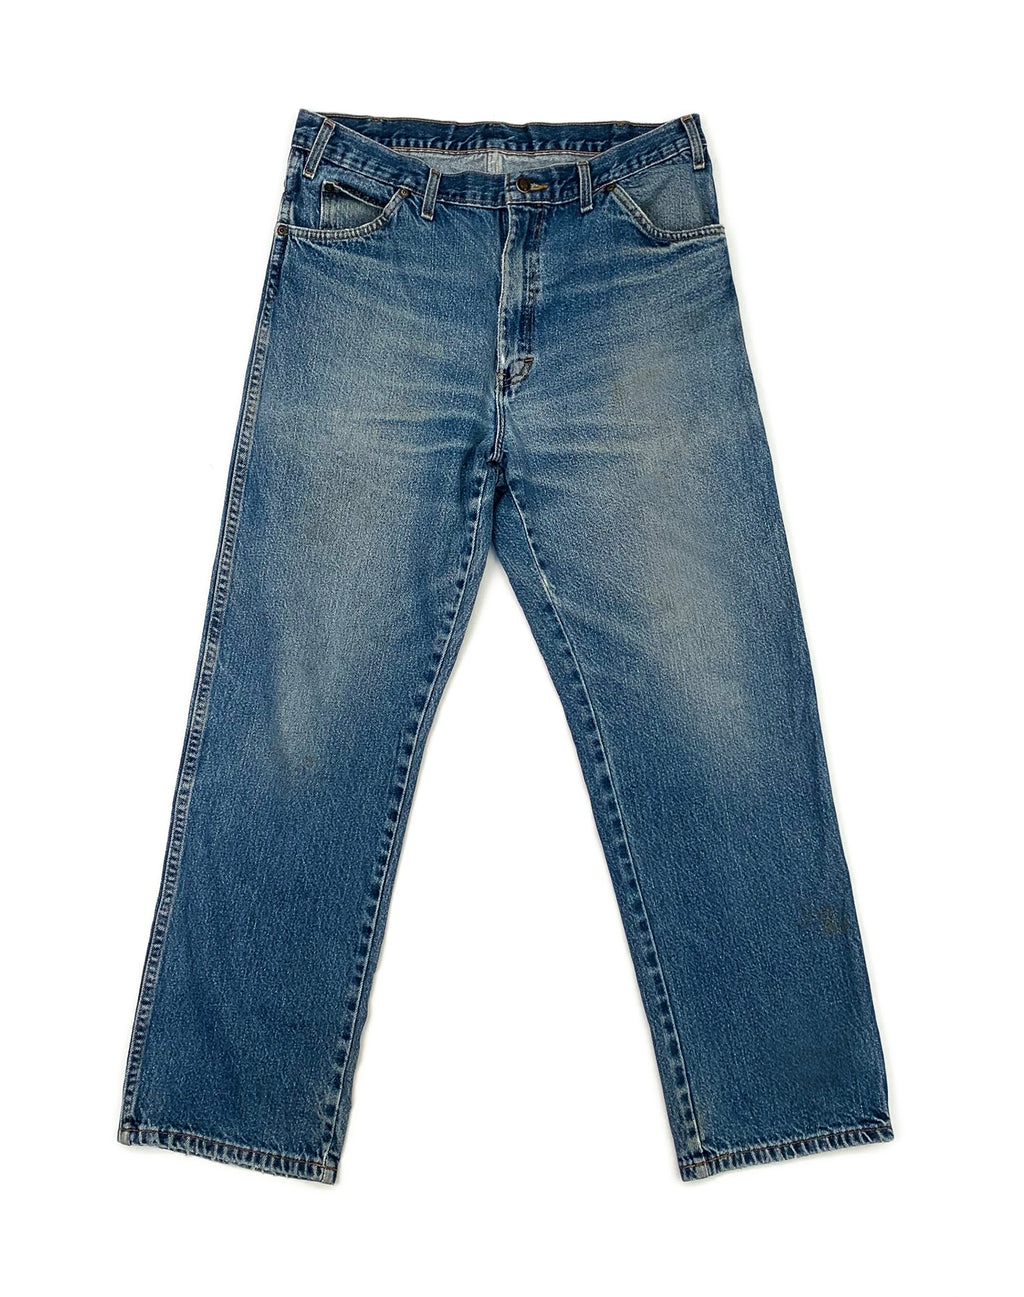 DICKIES MID-WASH DENIM JEANS